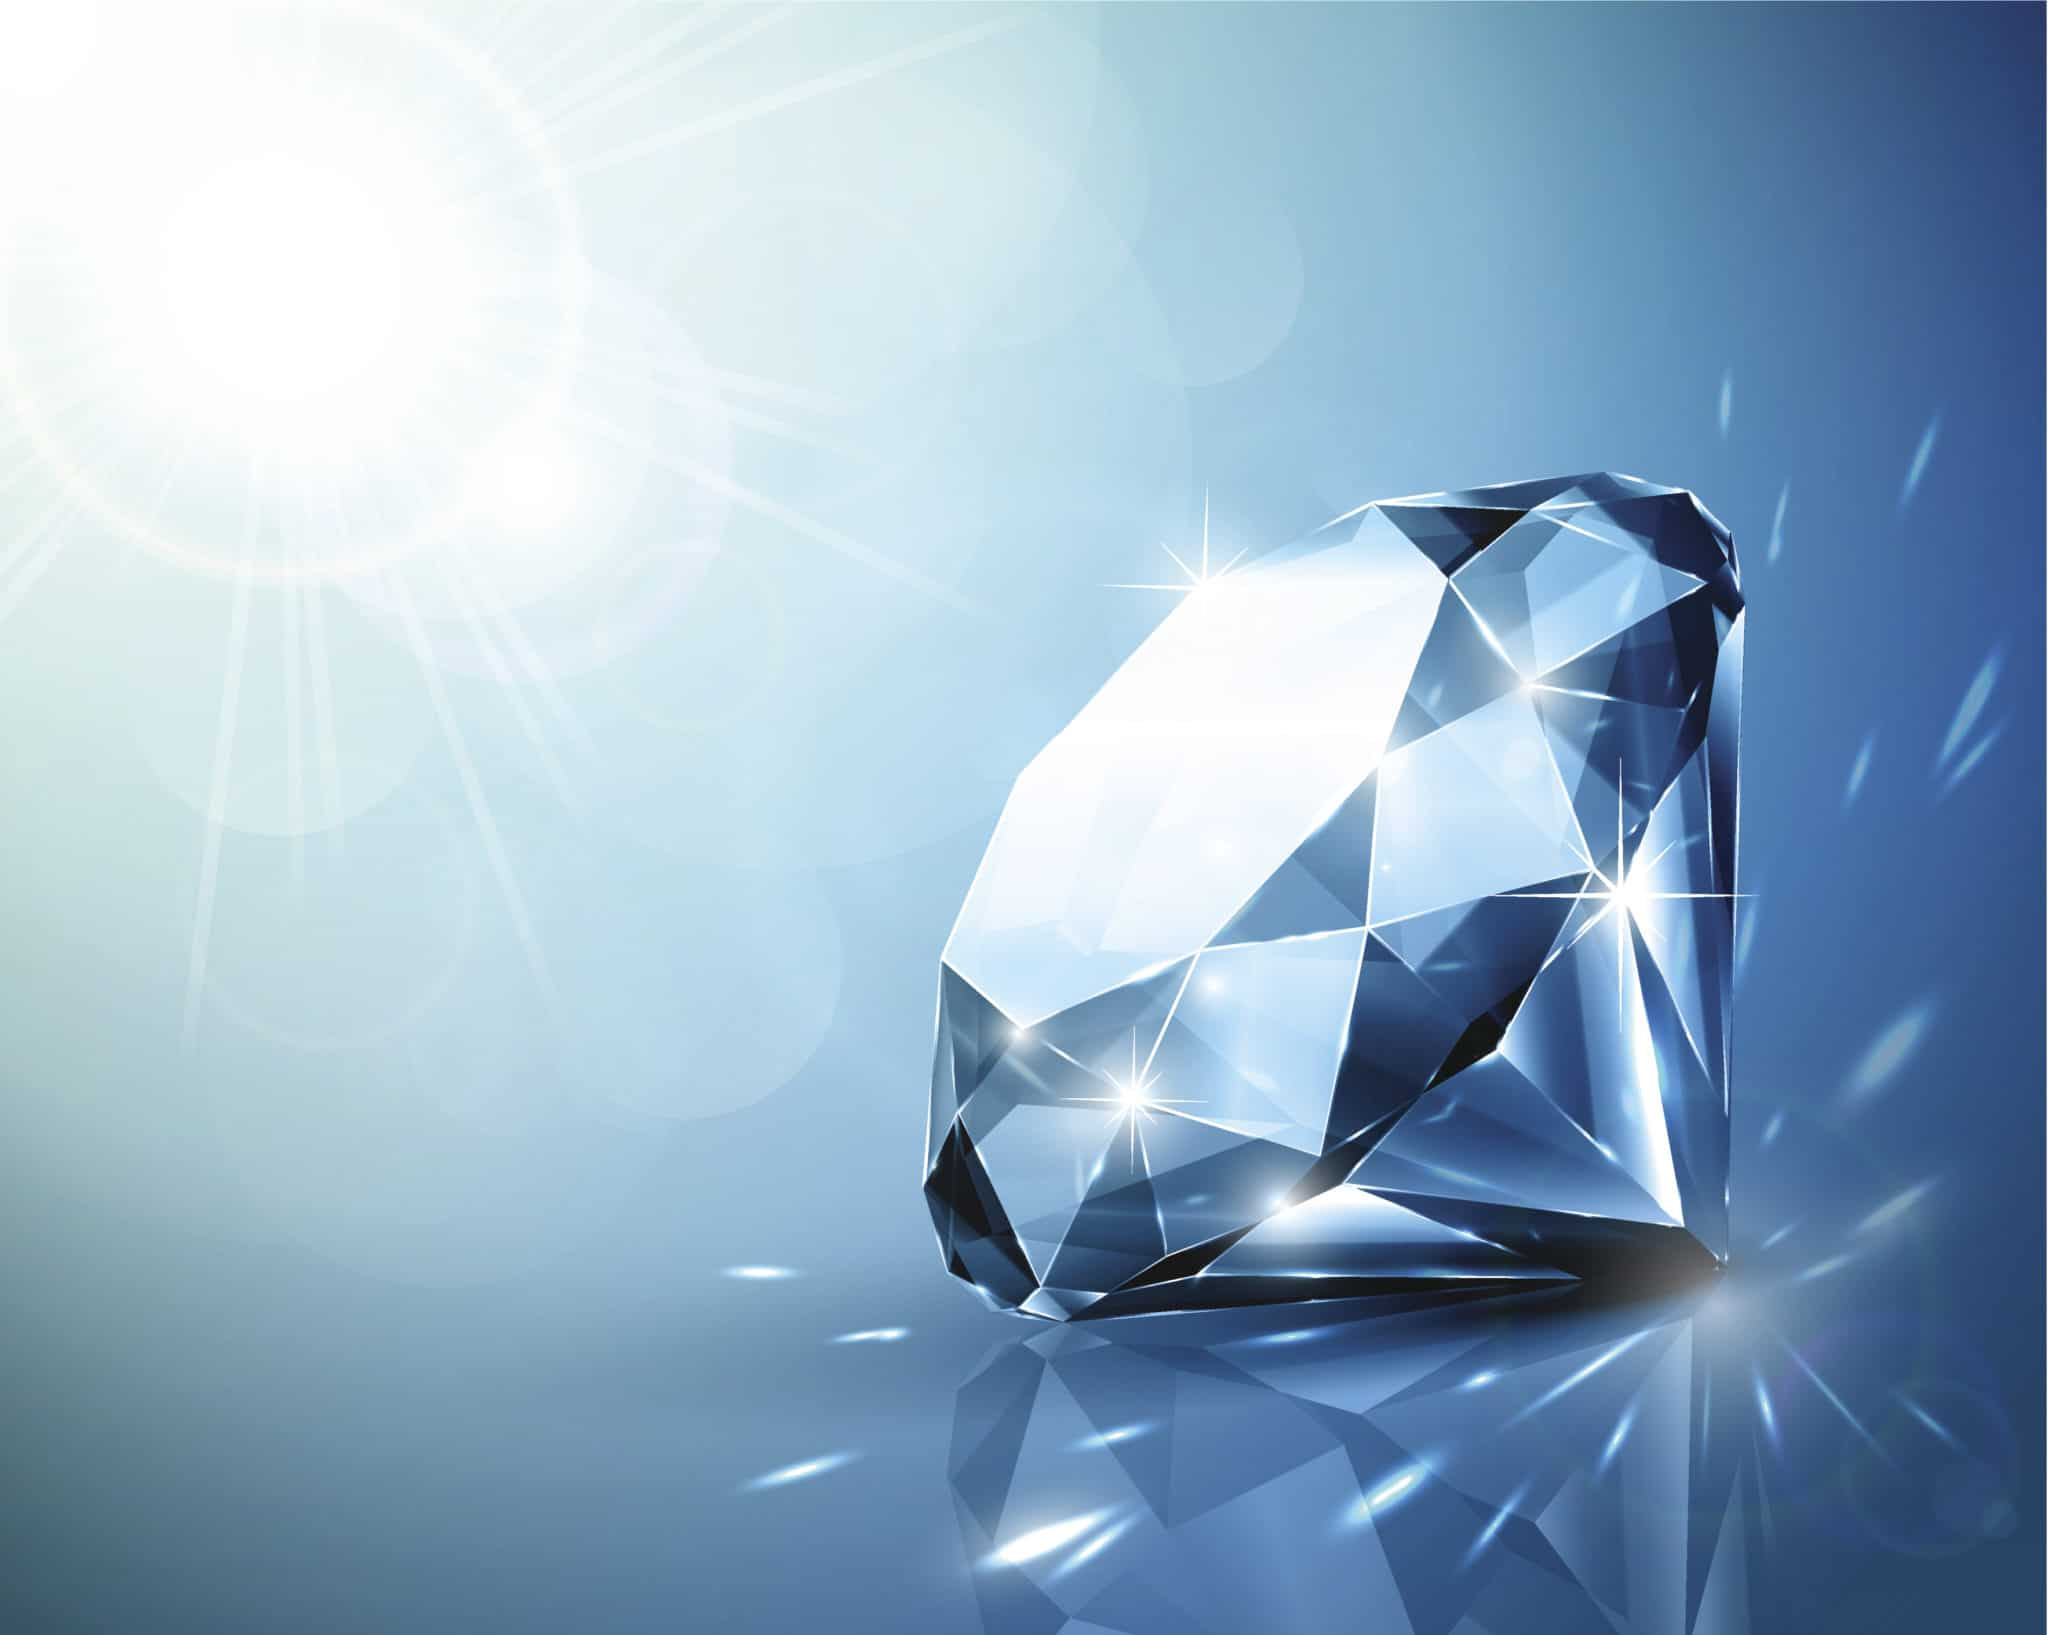 Every person is a diamond